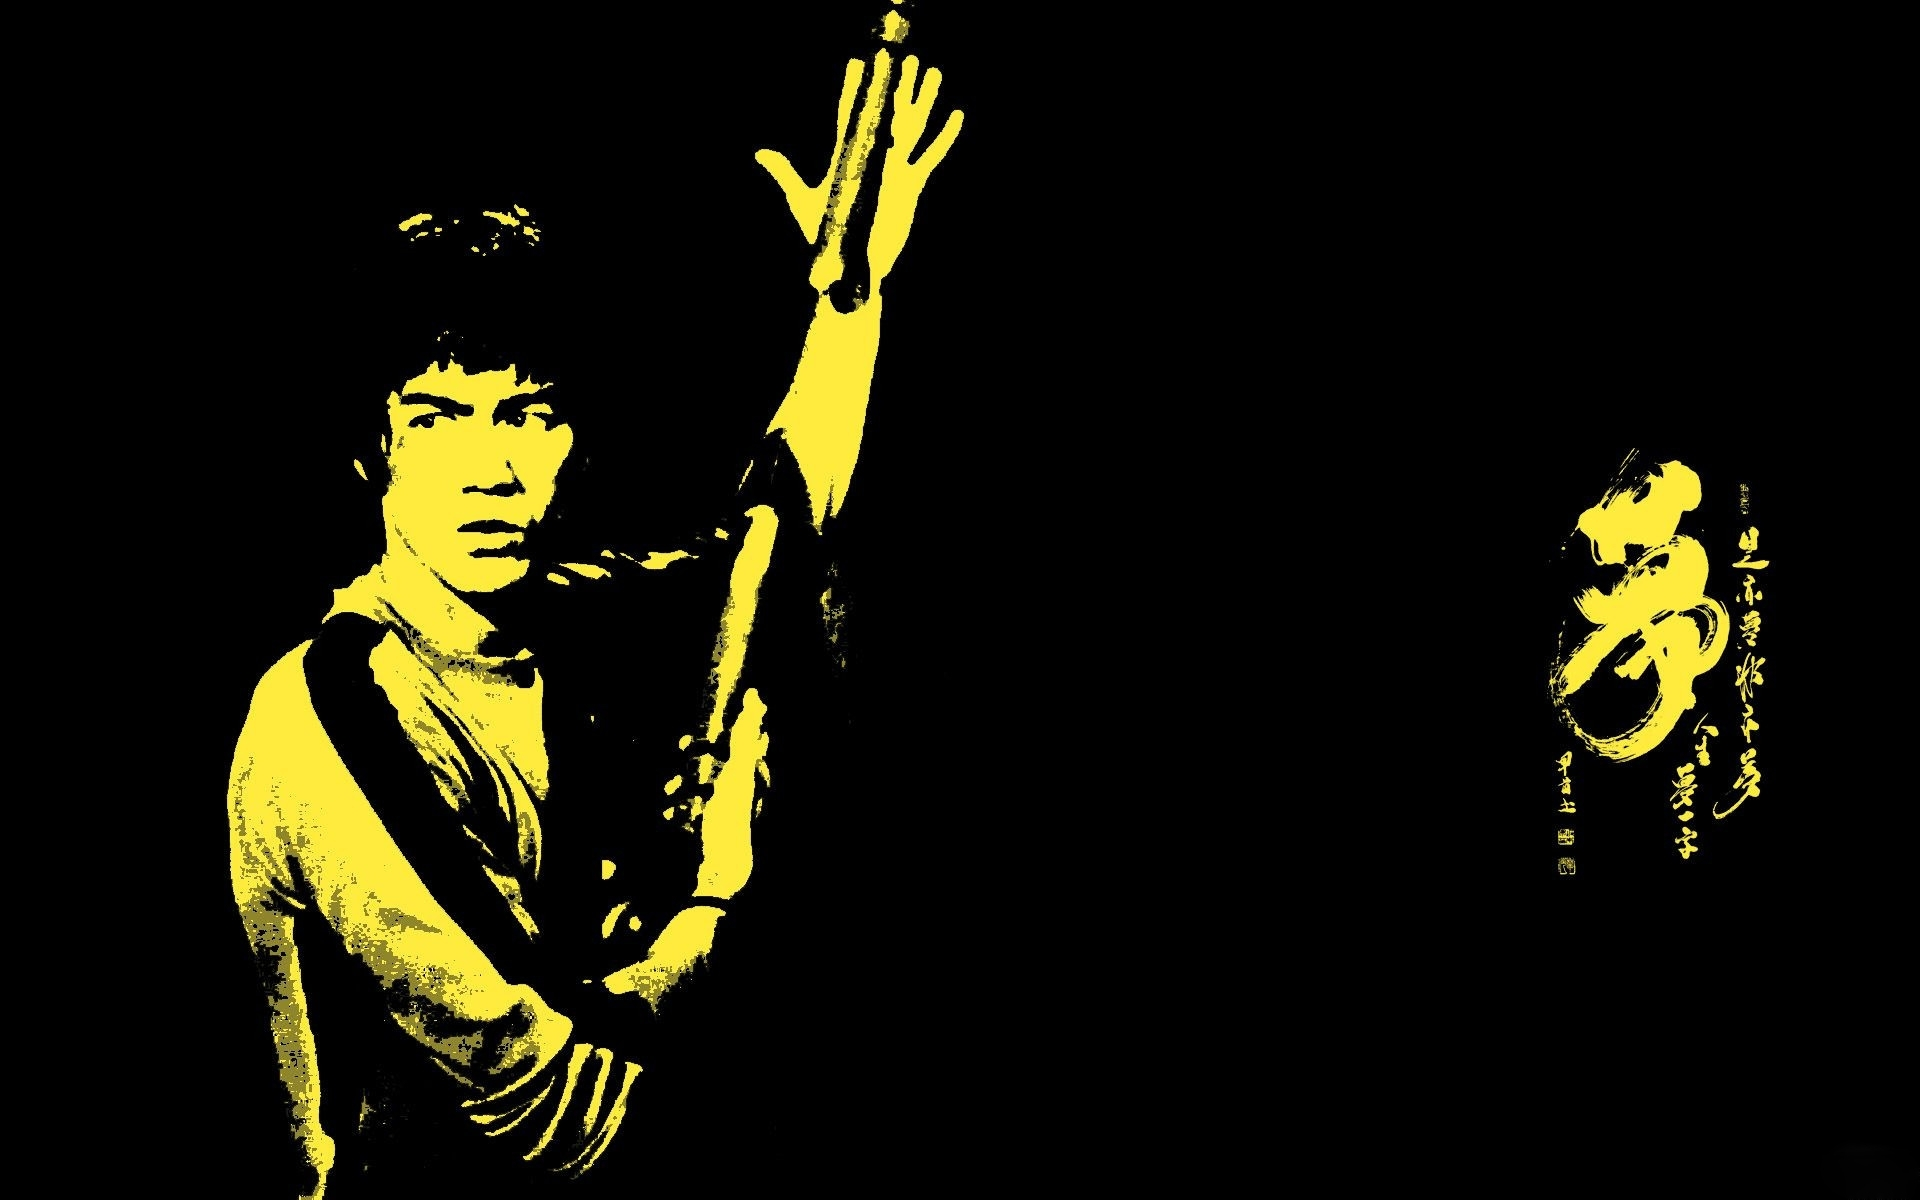 46 bruce lee fonds d'écran hd | arrière-plans - wallpaper abyss